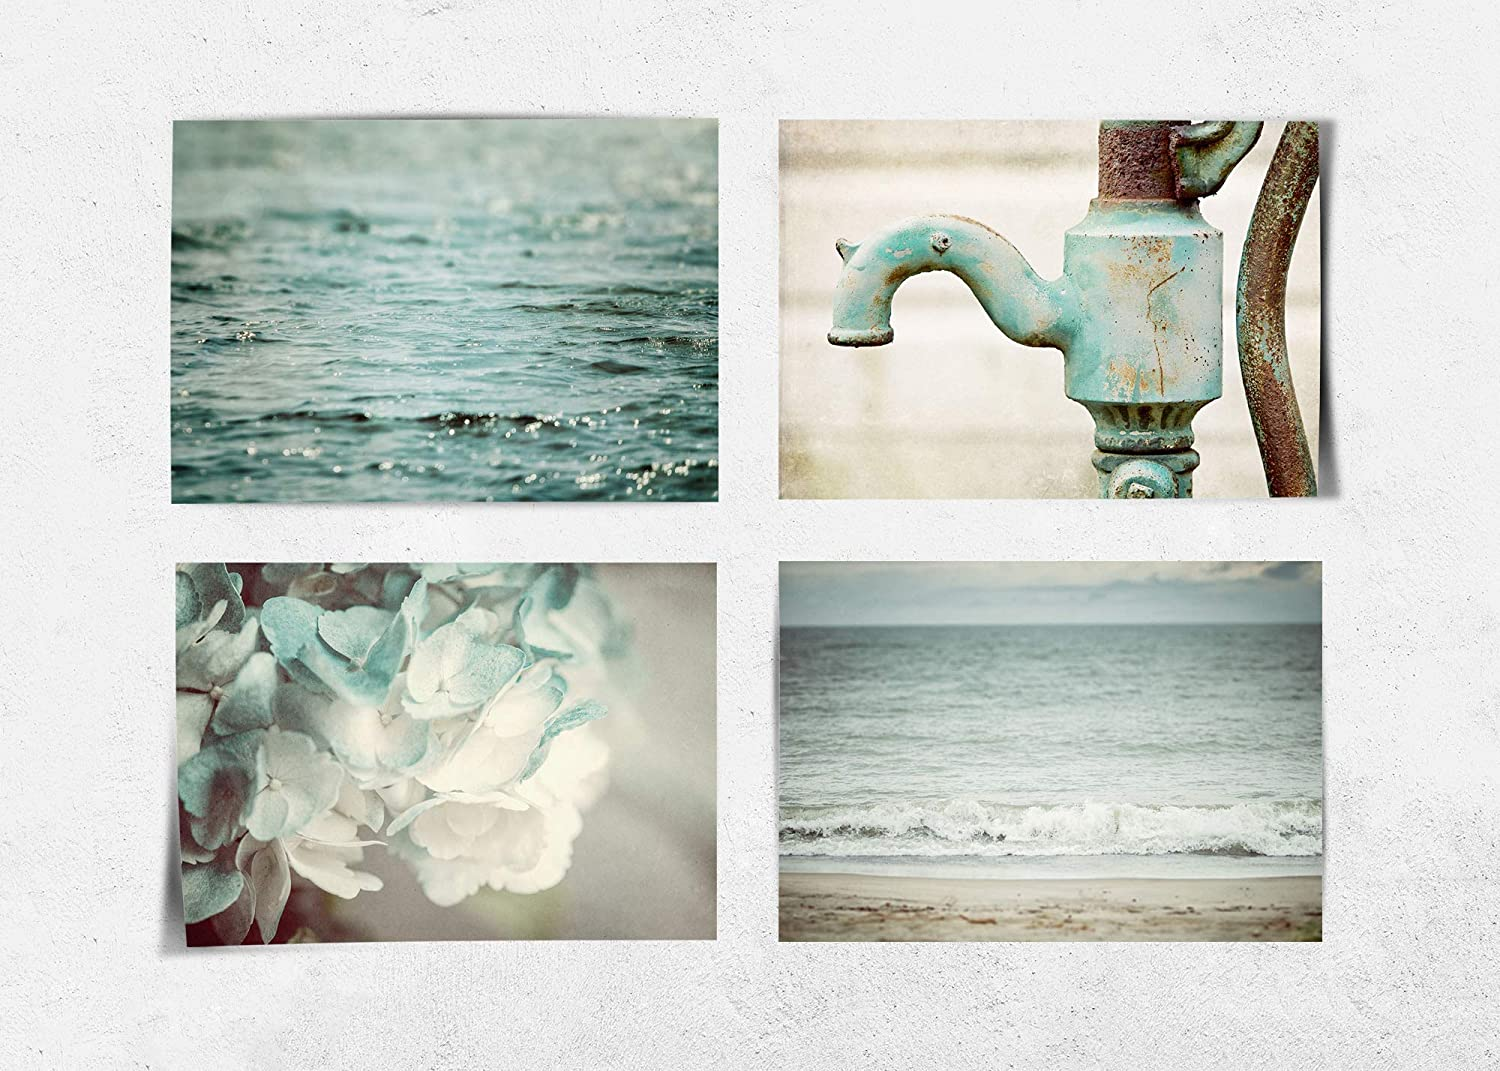 Amazon Com Shabby Chic Teal Bathroom Wall Art Decor Set Of 4 5x7 Prints Not Framed Rustic Farmhouse Beach And Floral Pictures Fba45 Handmade